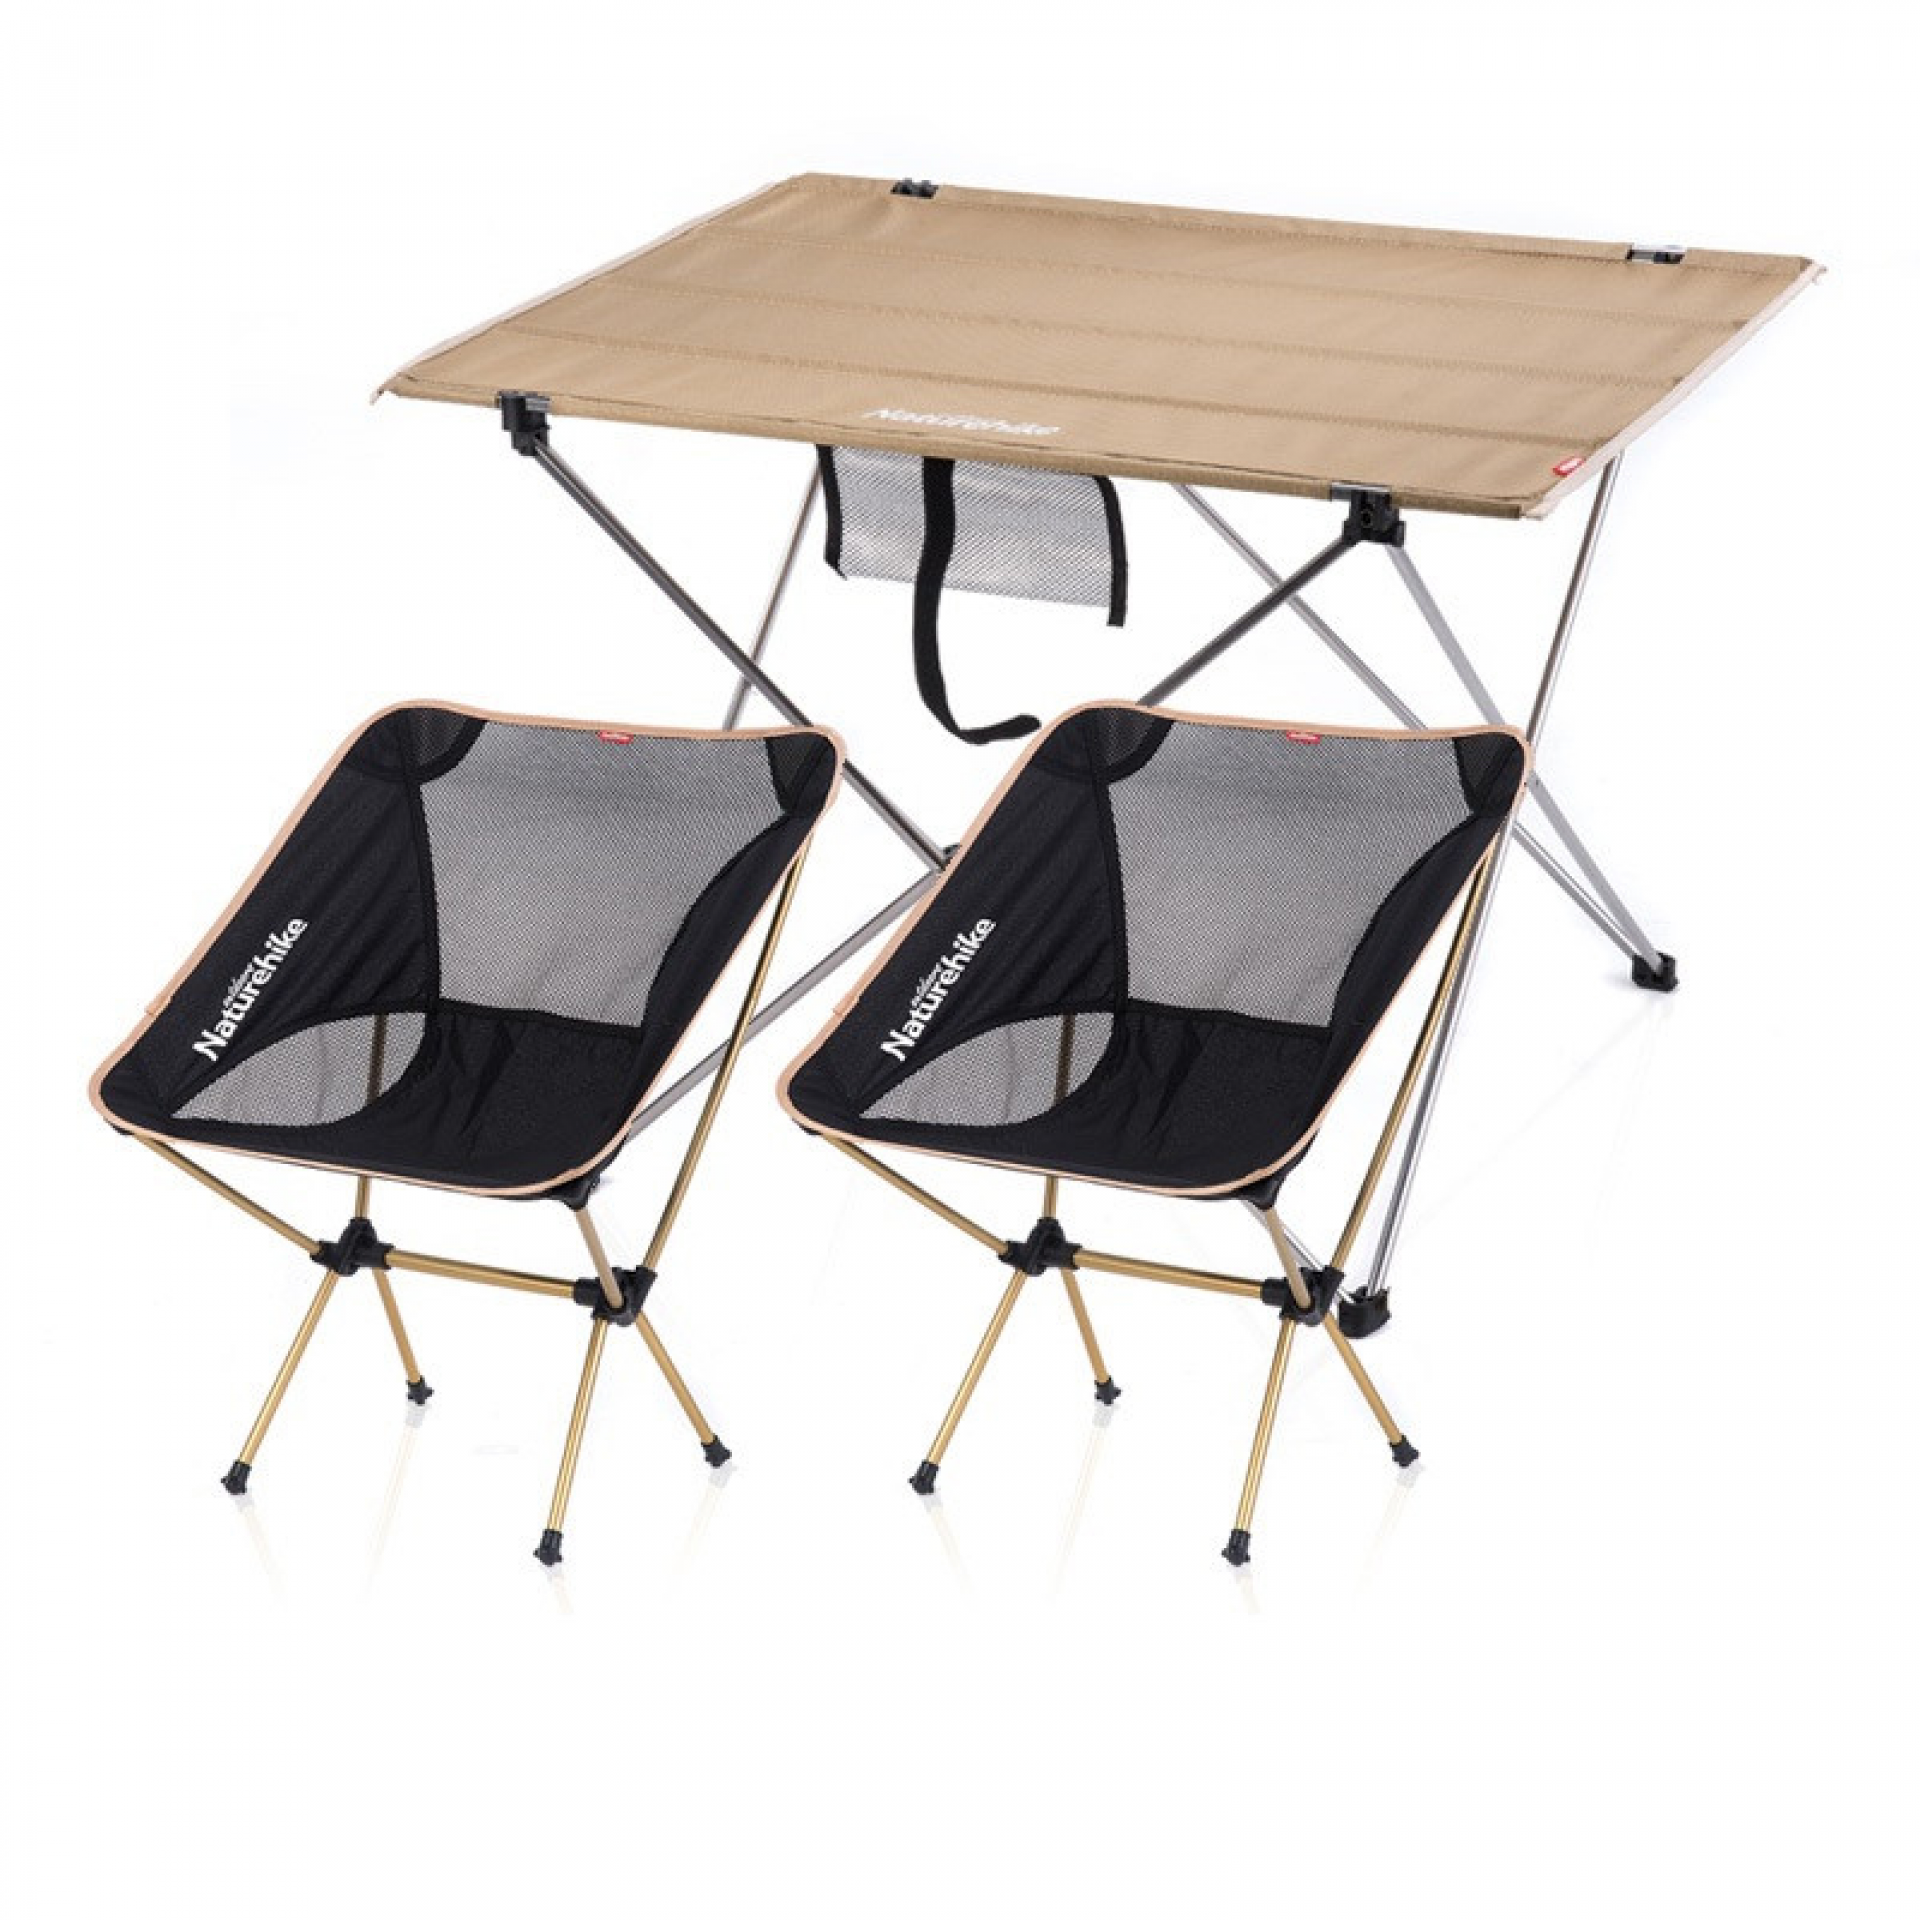 - Naturehike Aluminun Alloy Folding Table Moon Chair Set - HyperAir